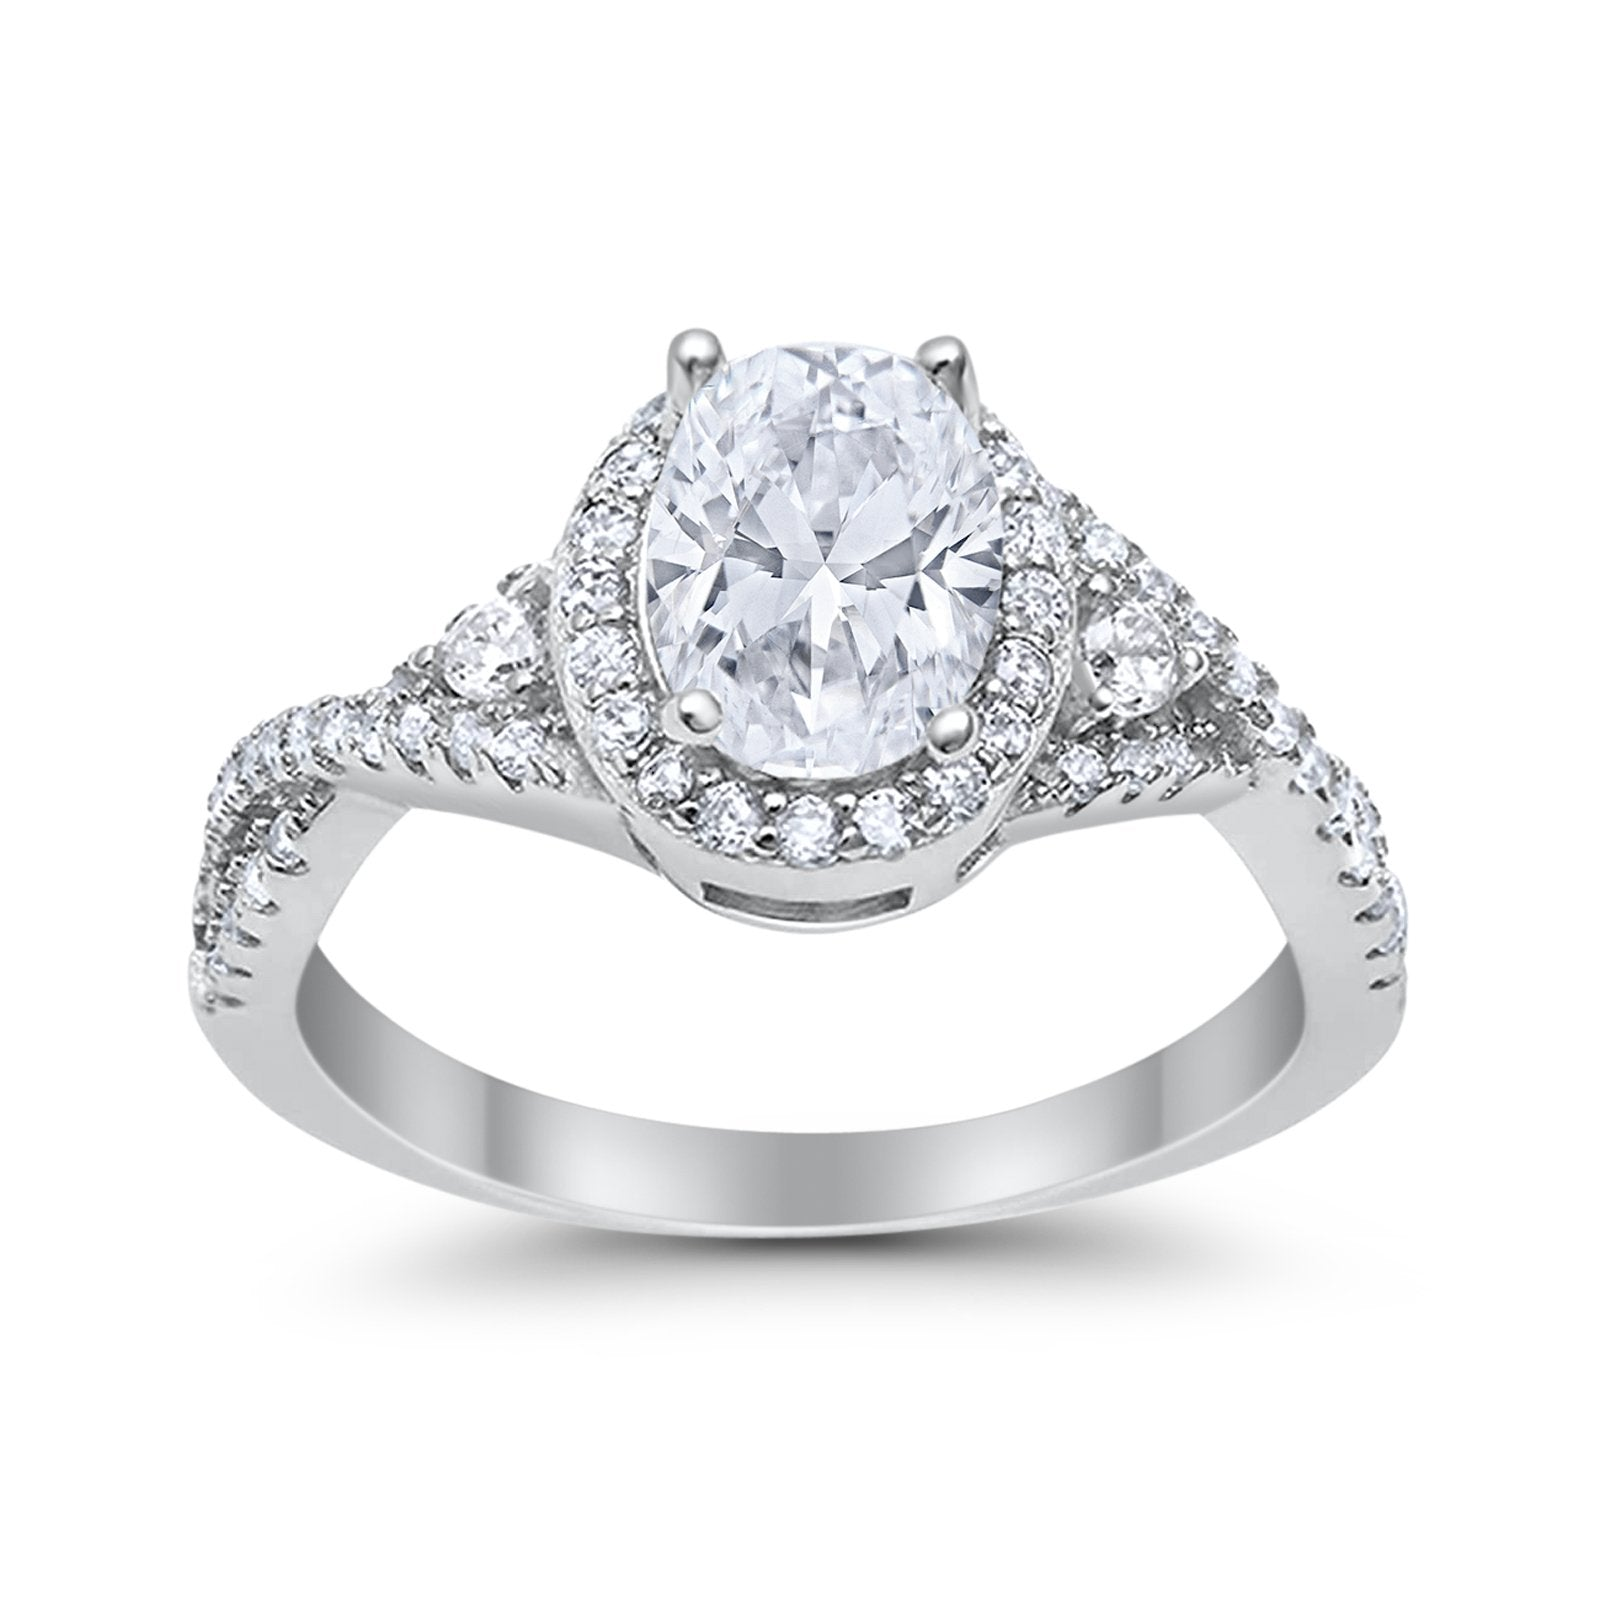 Halo Wedding Ring Simulated Simulated Cubic Zirconia 925 Sterling Silver